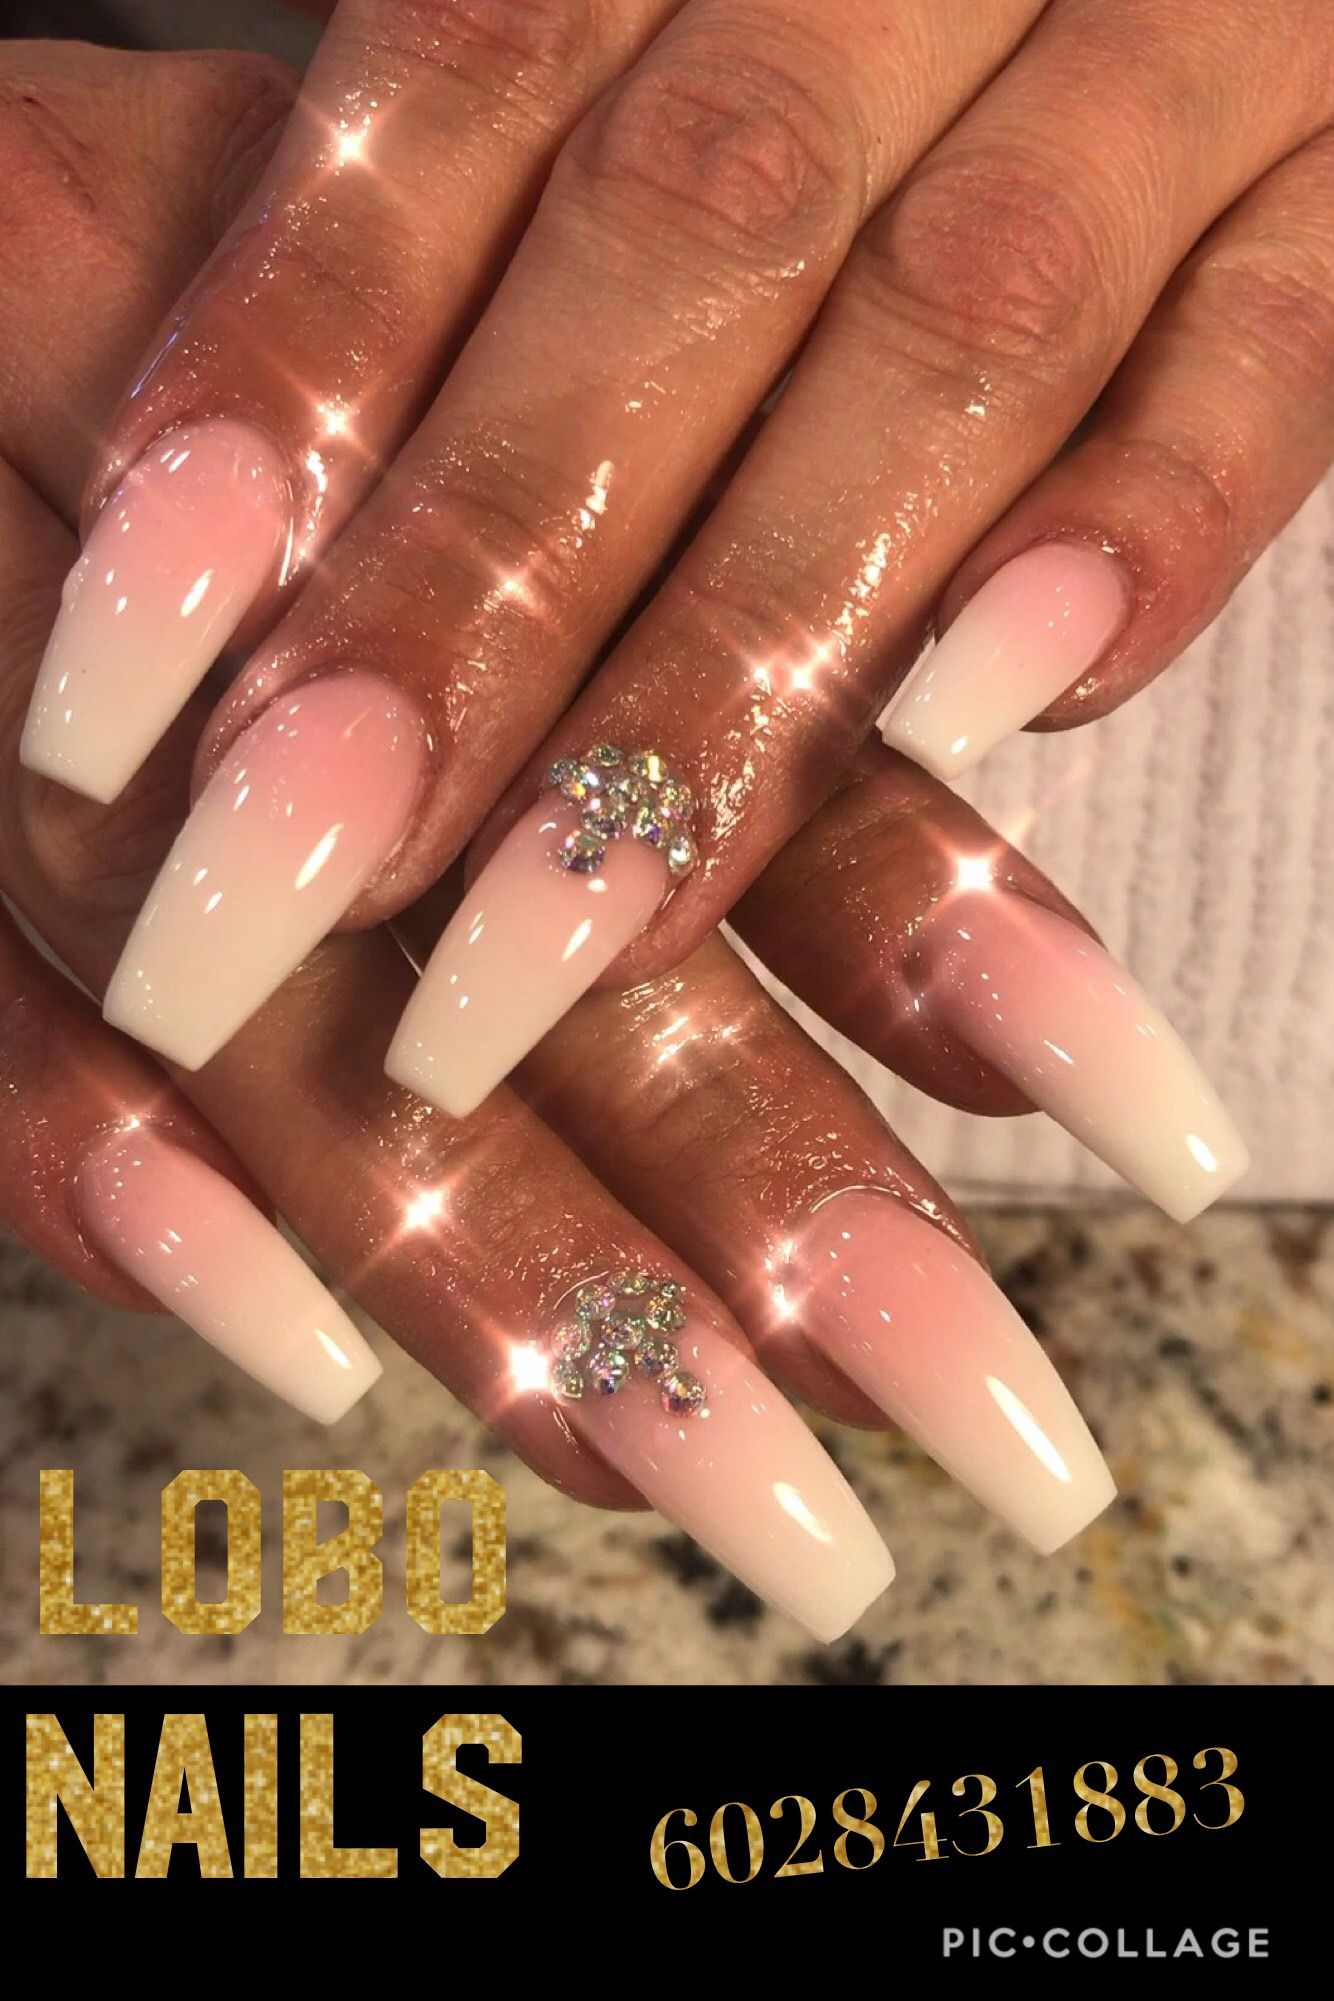 Pin by Bailee on LOBO Nails & spa | Pinterest | Crazy nails